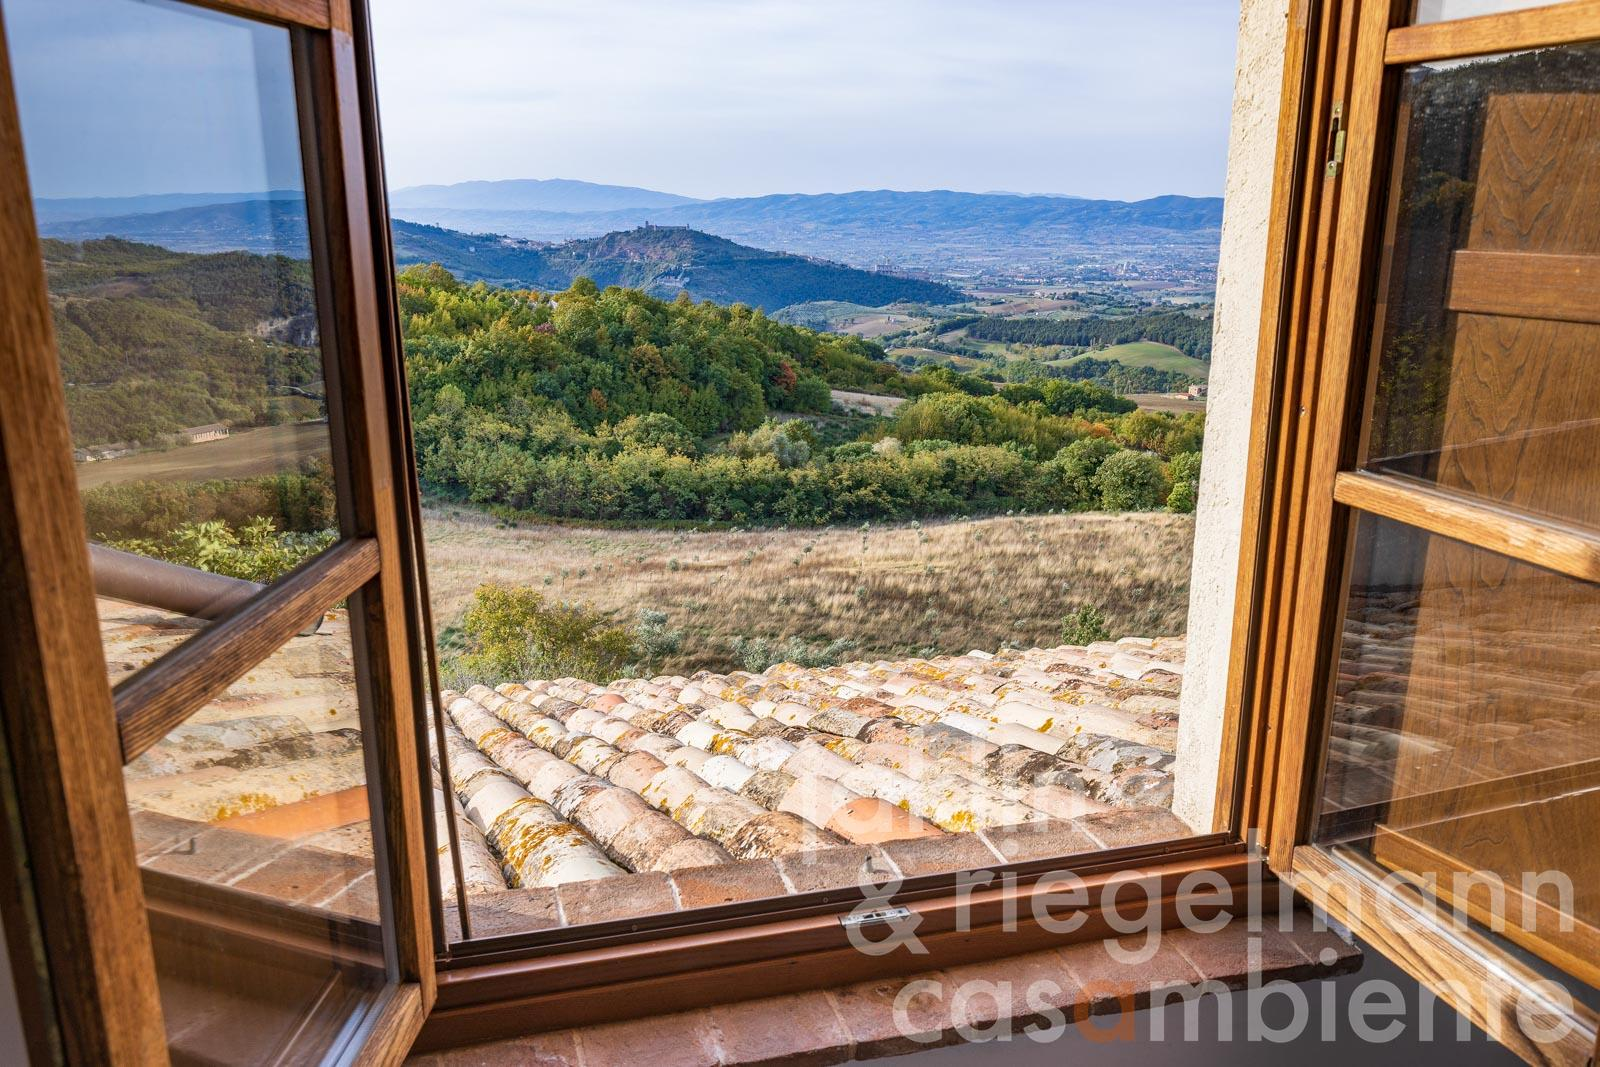 Agriturismo with panoramic views over Asisi in Umbria